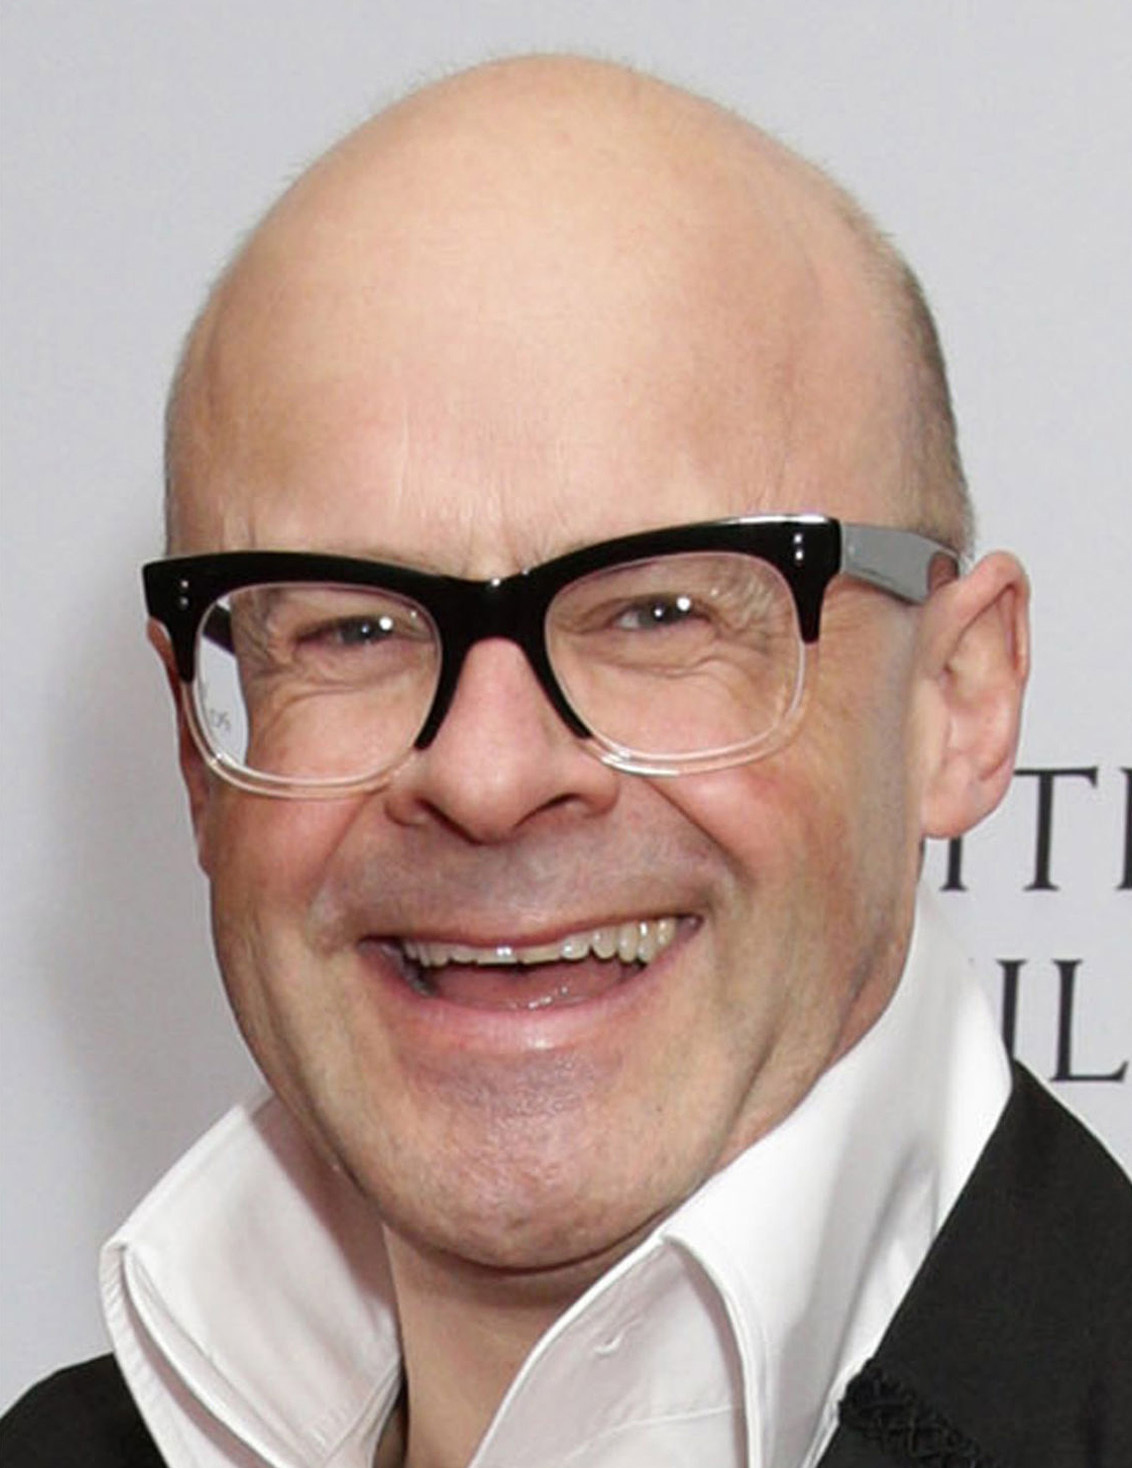 Harry Hill is a qualified neurosurgeon